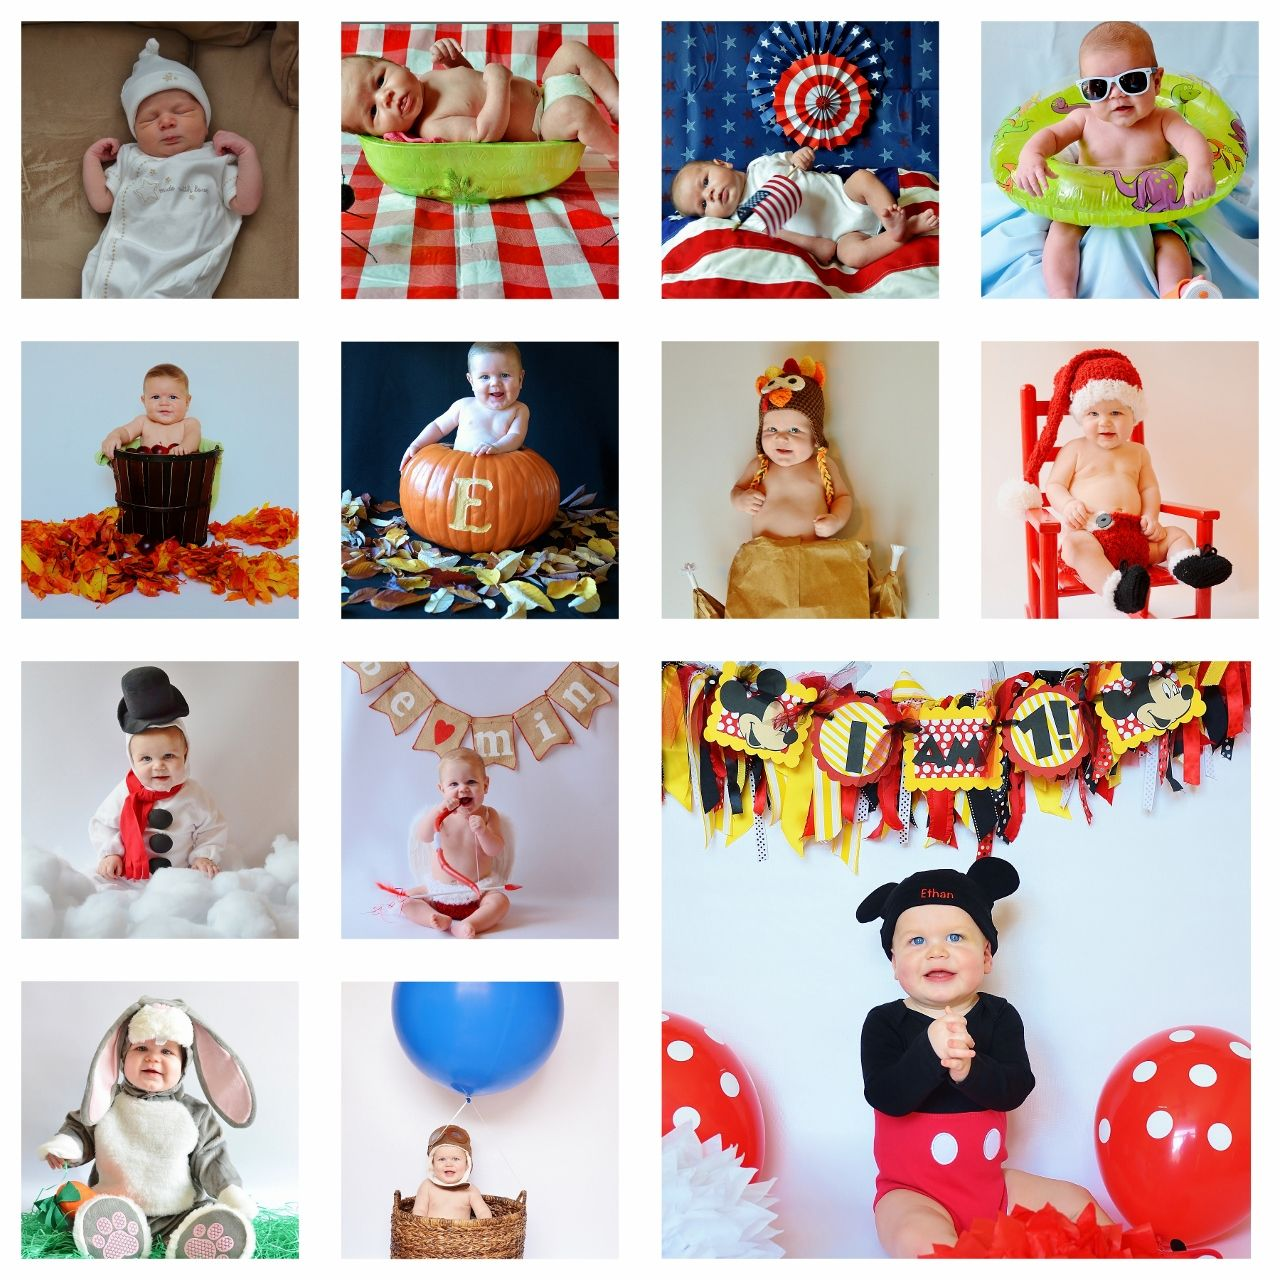 Dworianyn Love Nest Monthly Theme Photo Baby Milestones Pictures Baby Photos Weekly Baby Picture